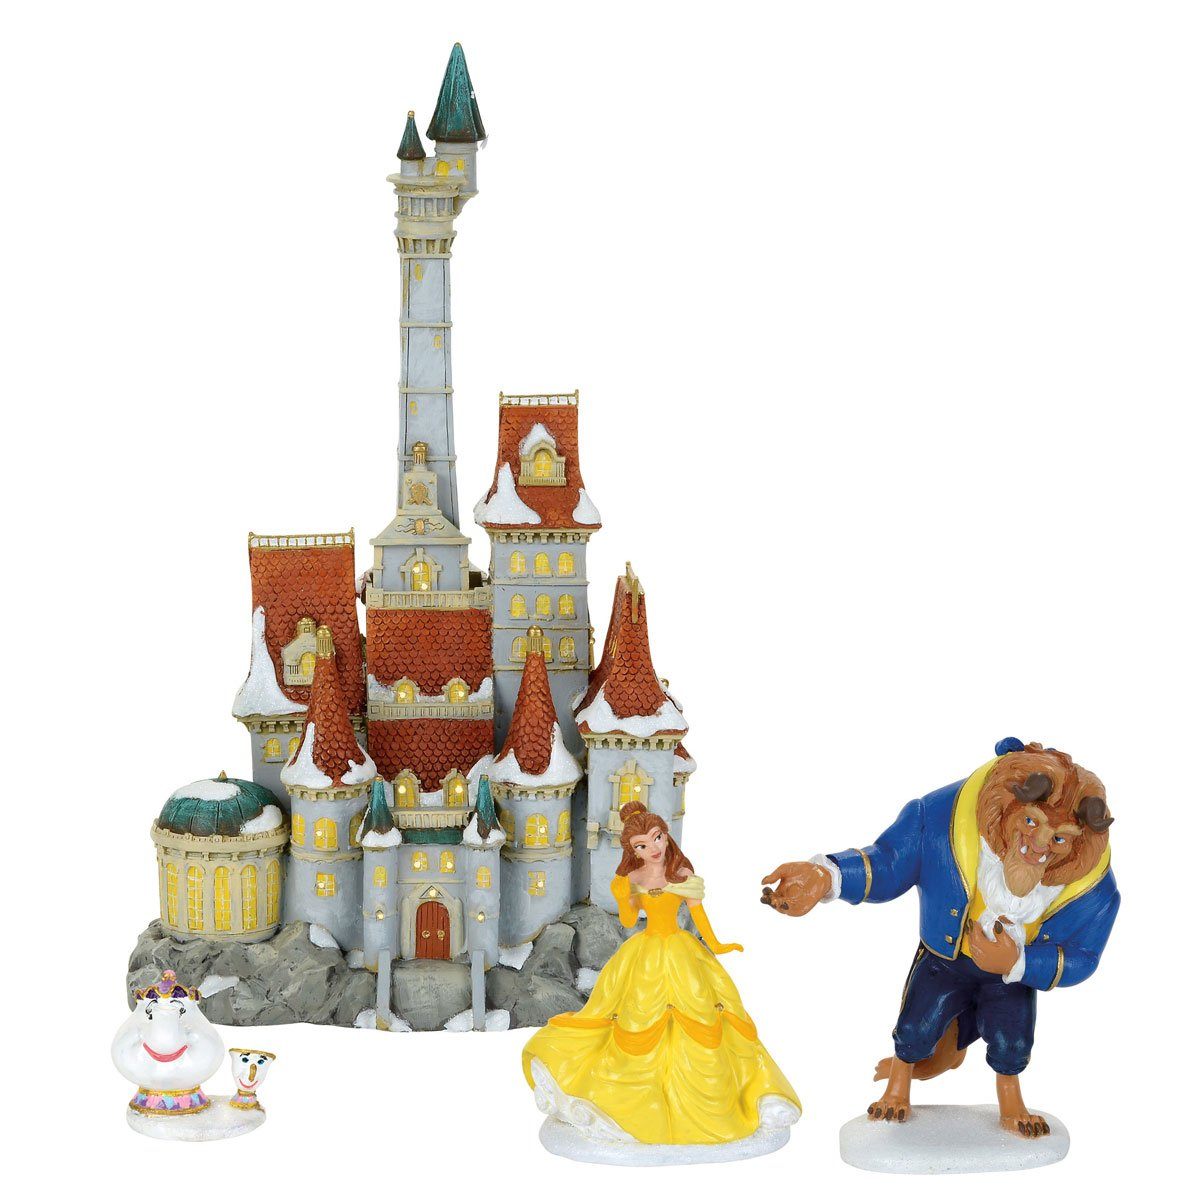 Department 56 Disney Princess Village Beauty & The Beast Holiday Set